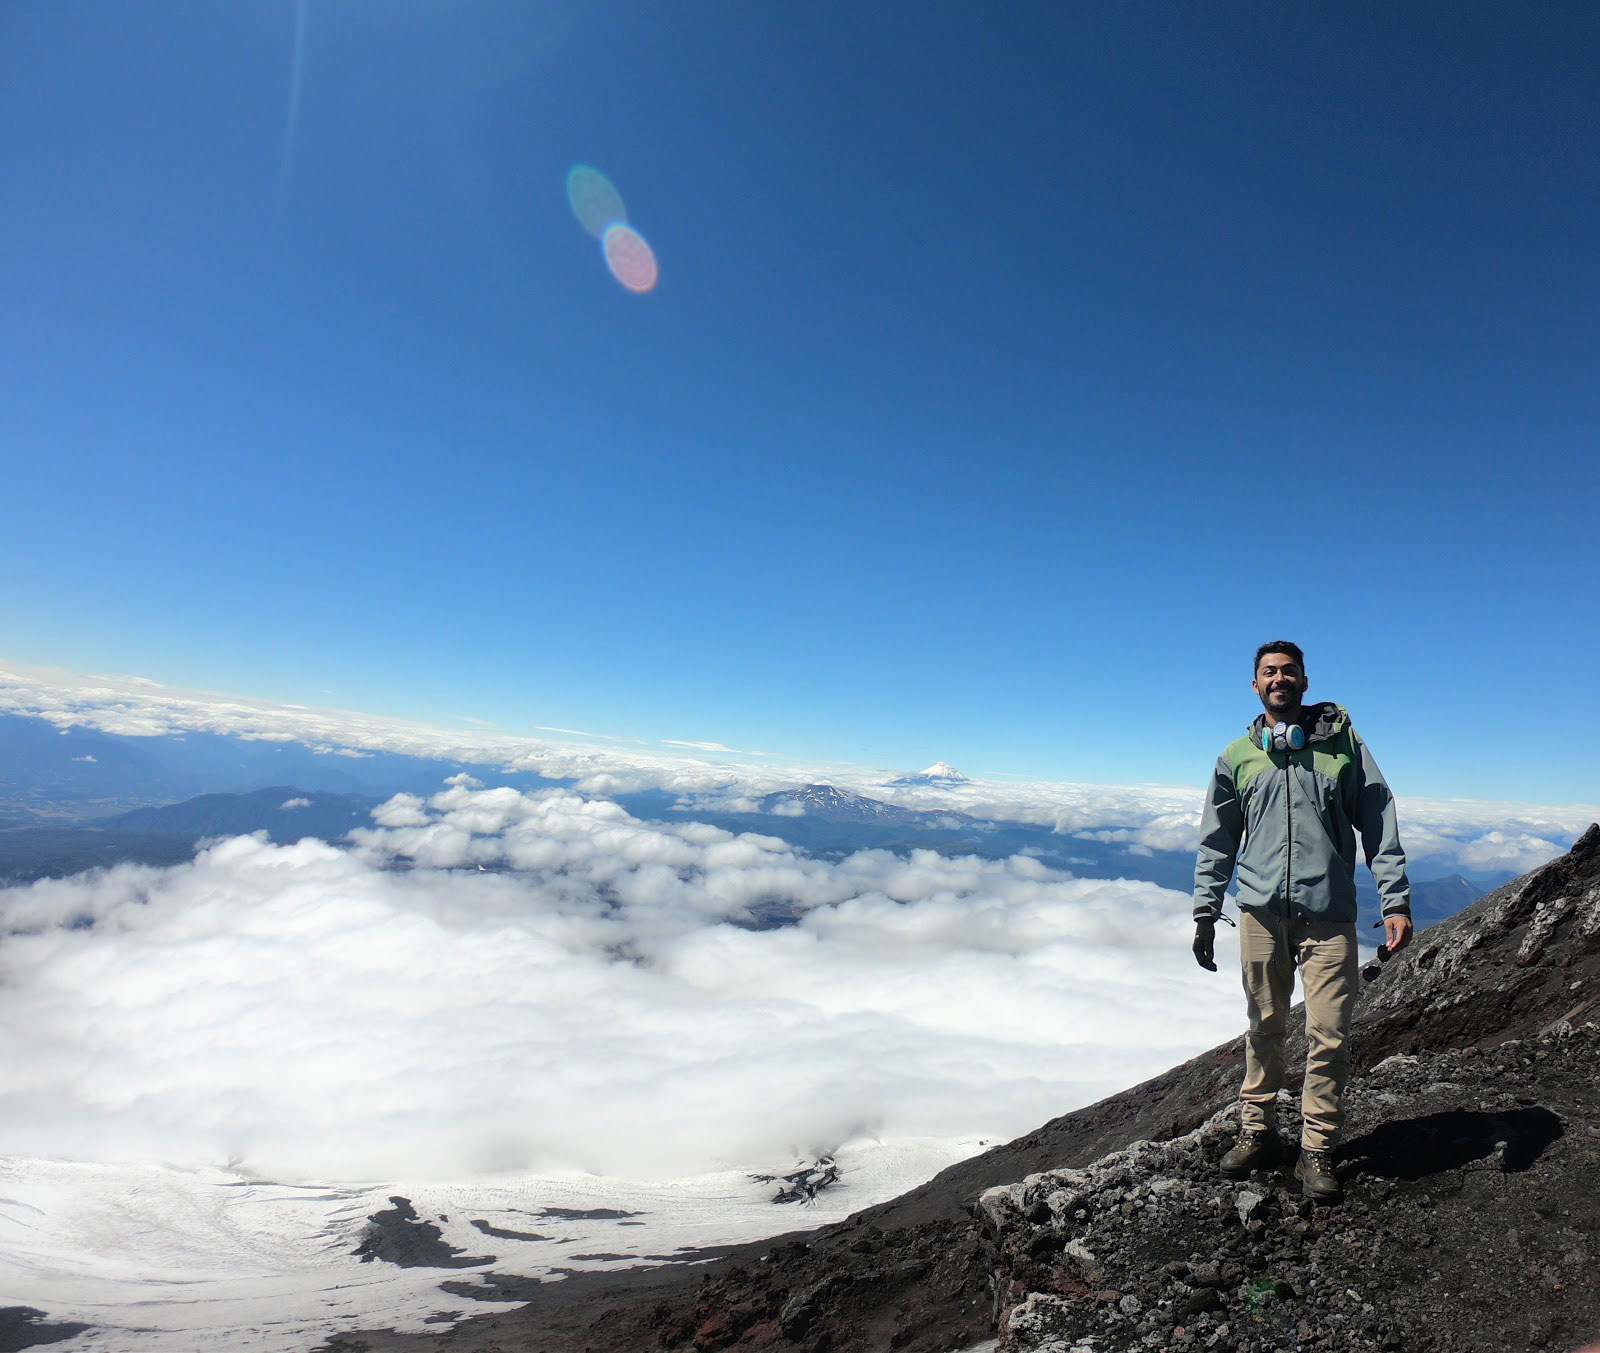 Ricardo standing on the top of a mountain with a beautiful landscape and clouds behind him